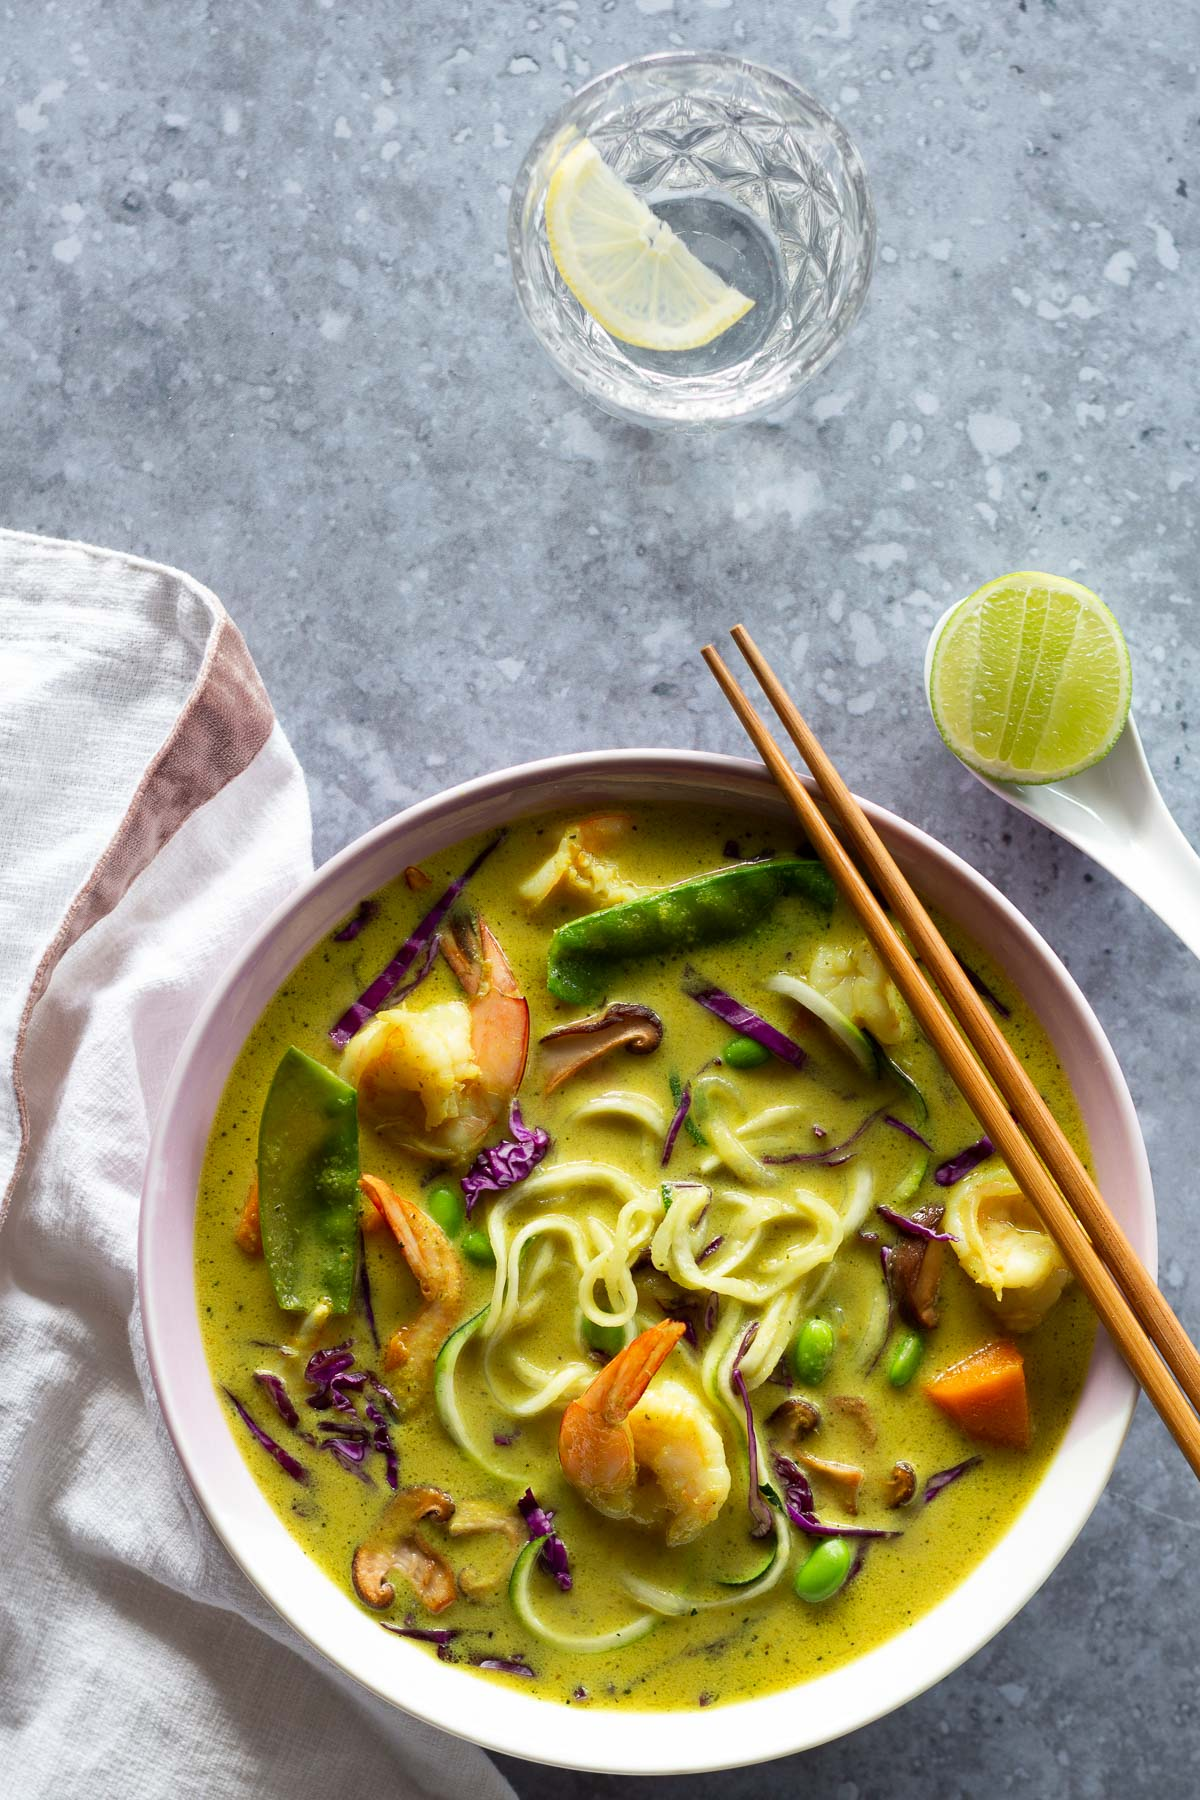 Lemongrass noodle soup packed with tasty veggies, noodles and served with a lime cheek